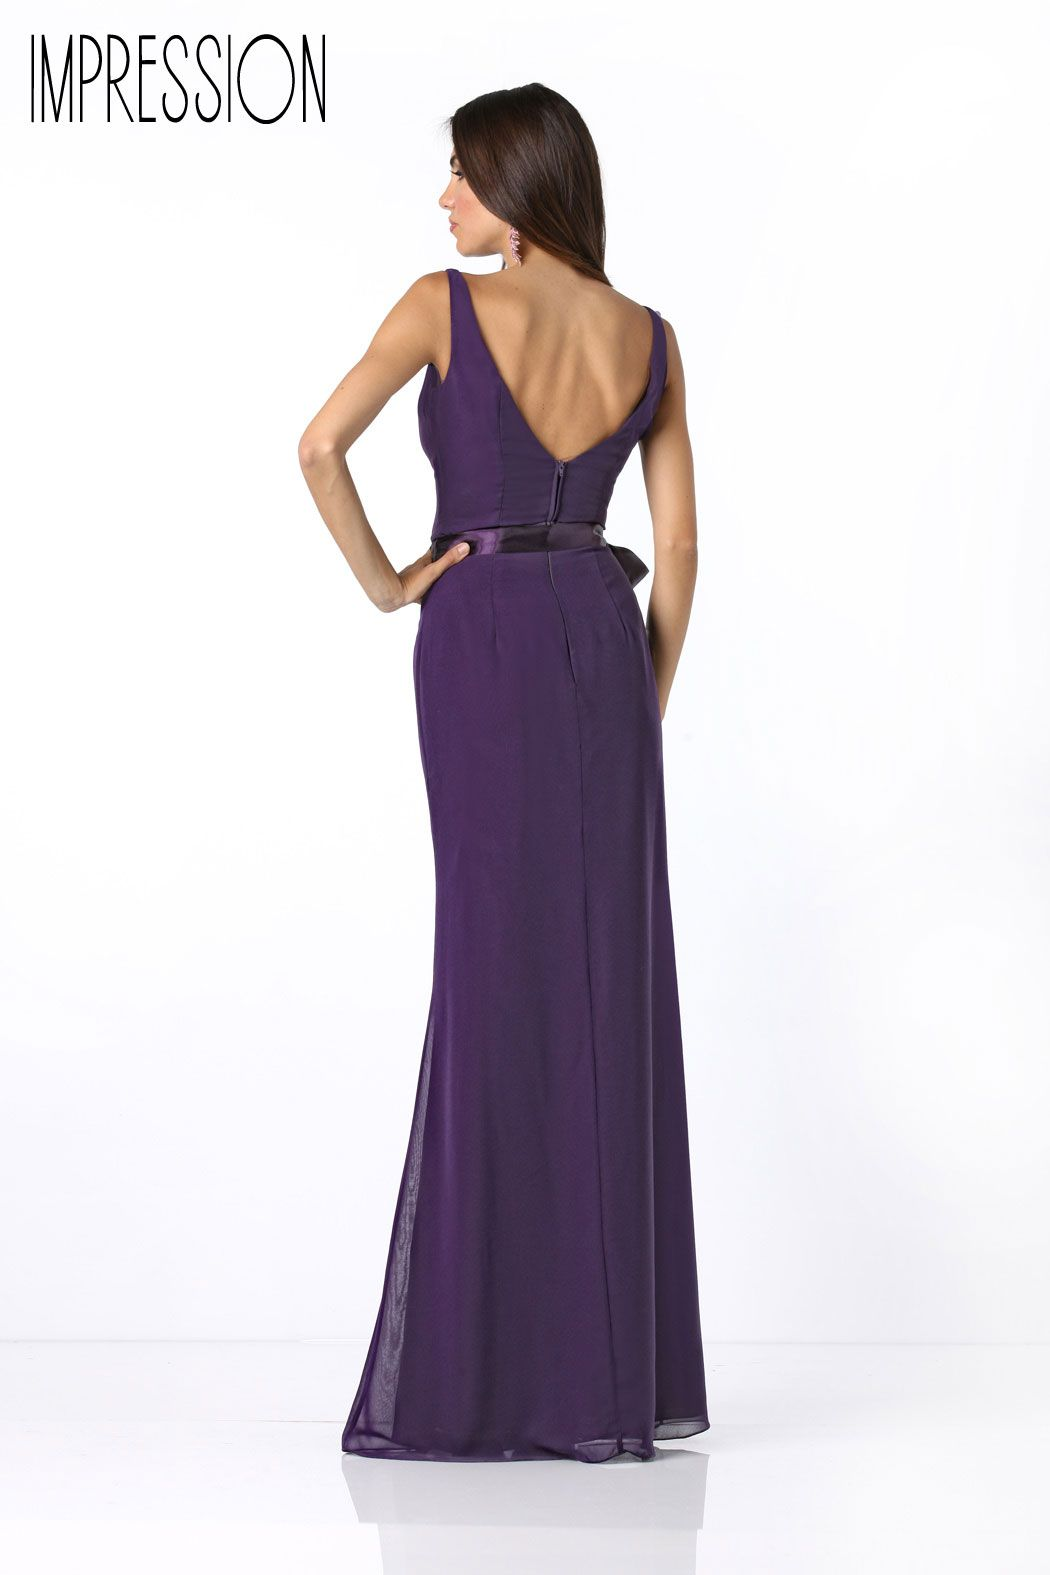 Top dresses to wear to a wedding  Mix and match any top and any skirt in any color and size for your